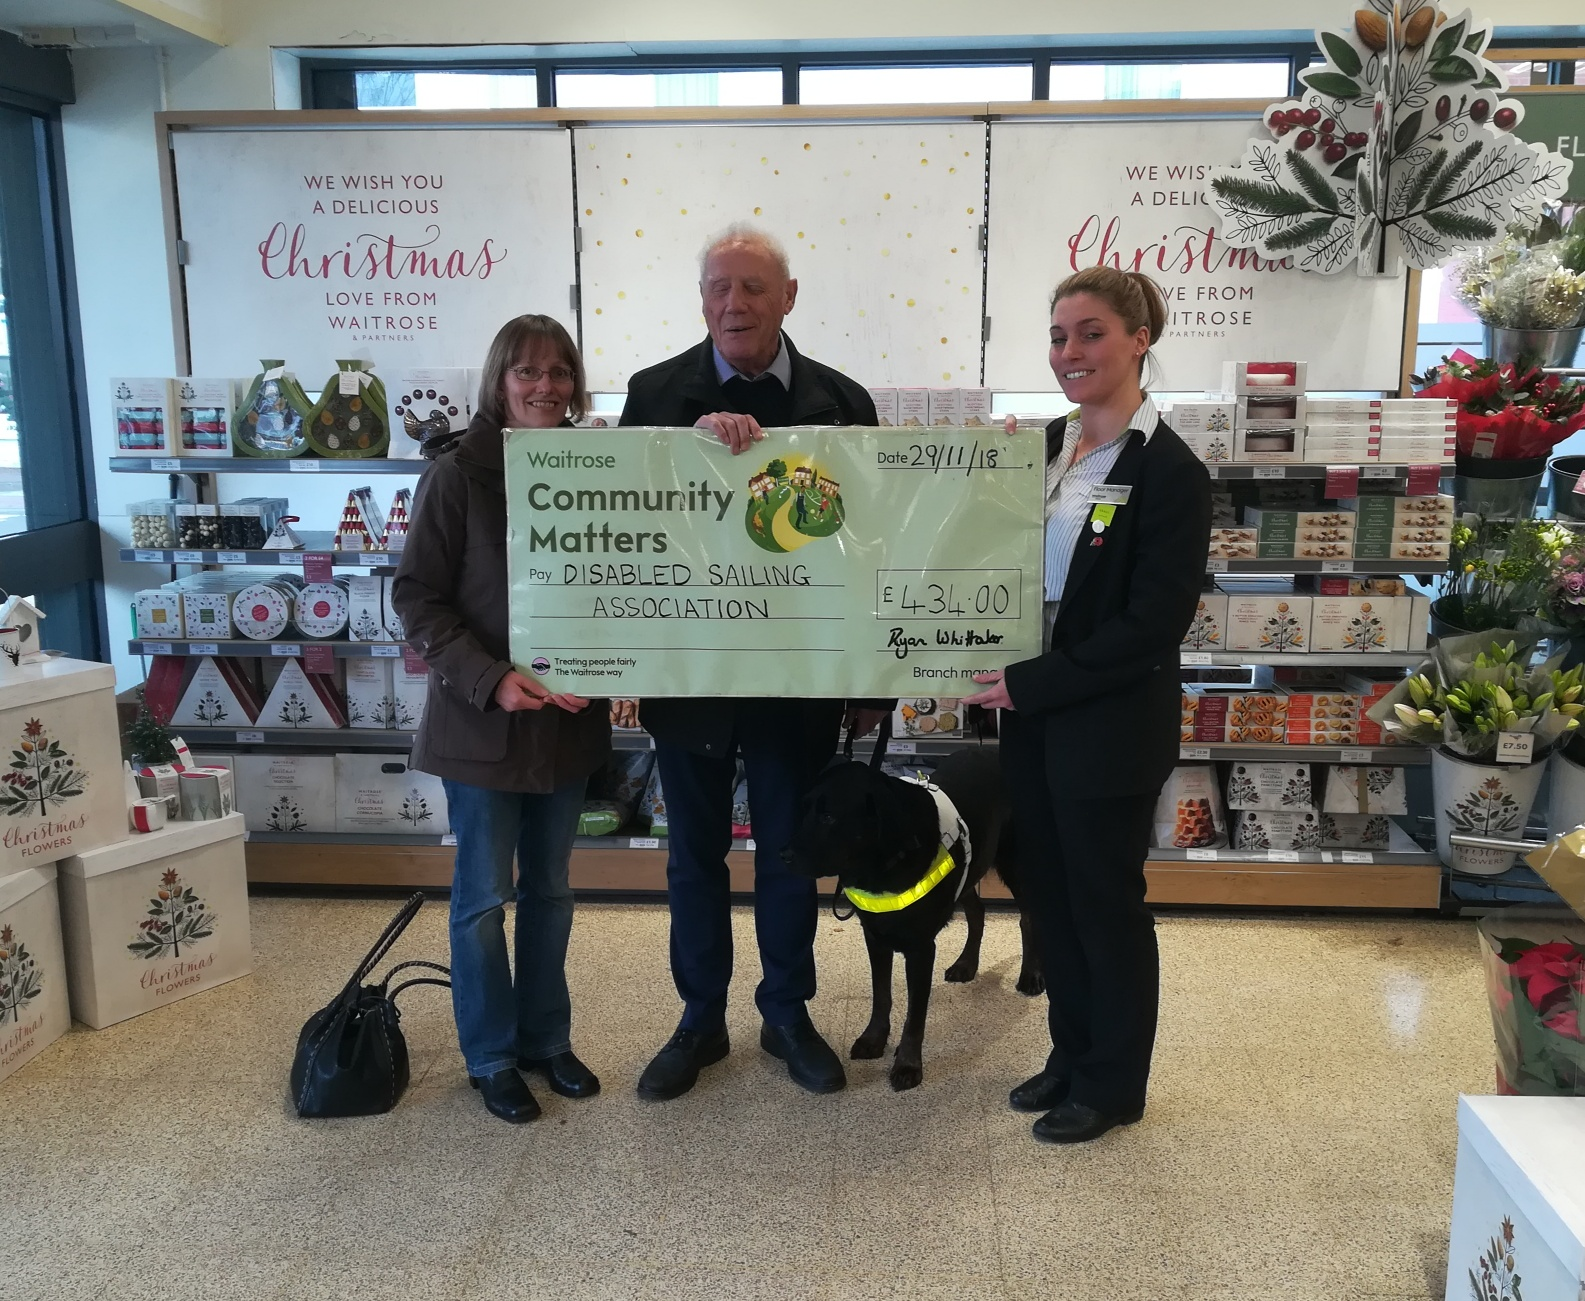 David receiving a waitrose cheque